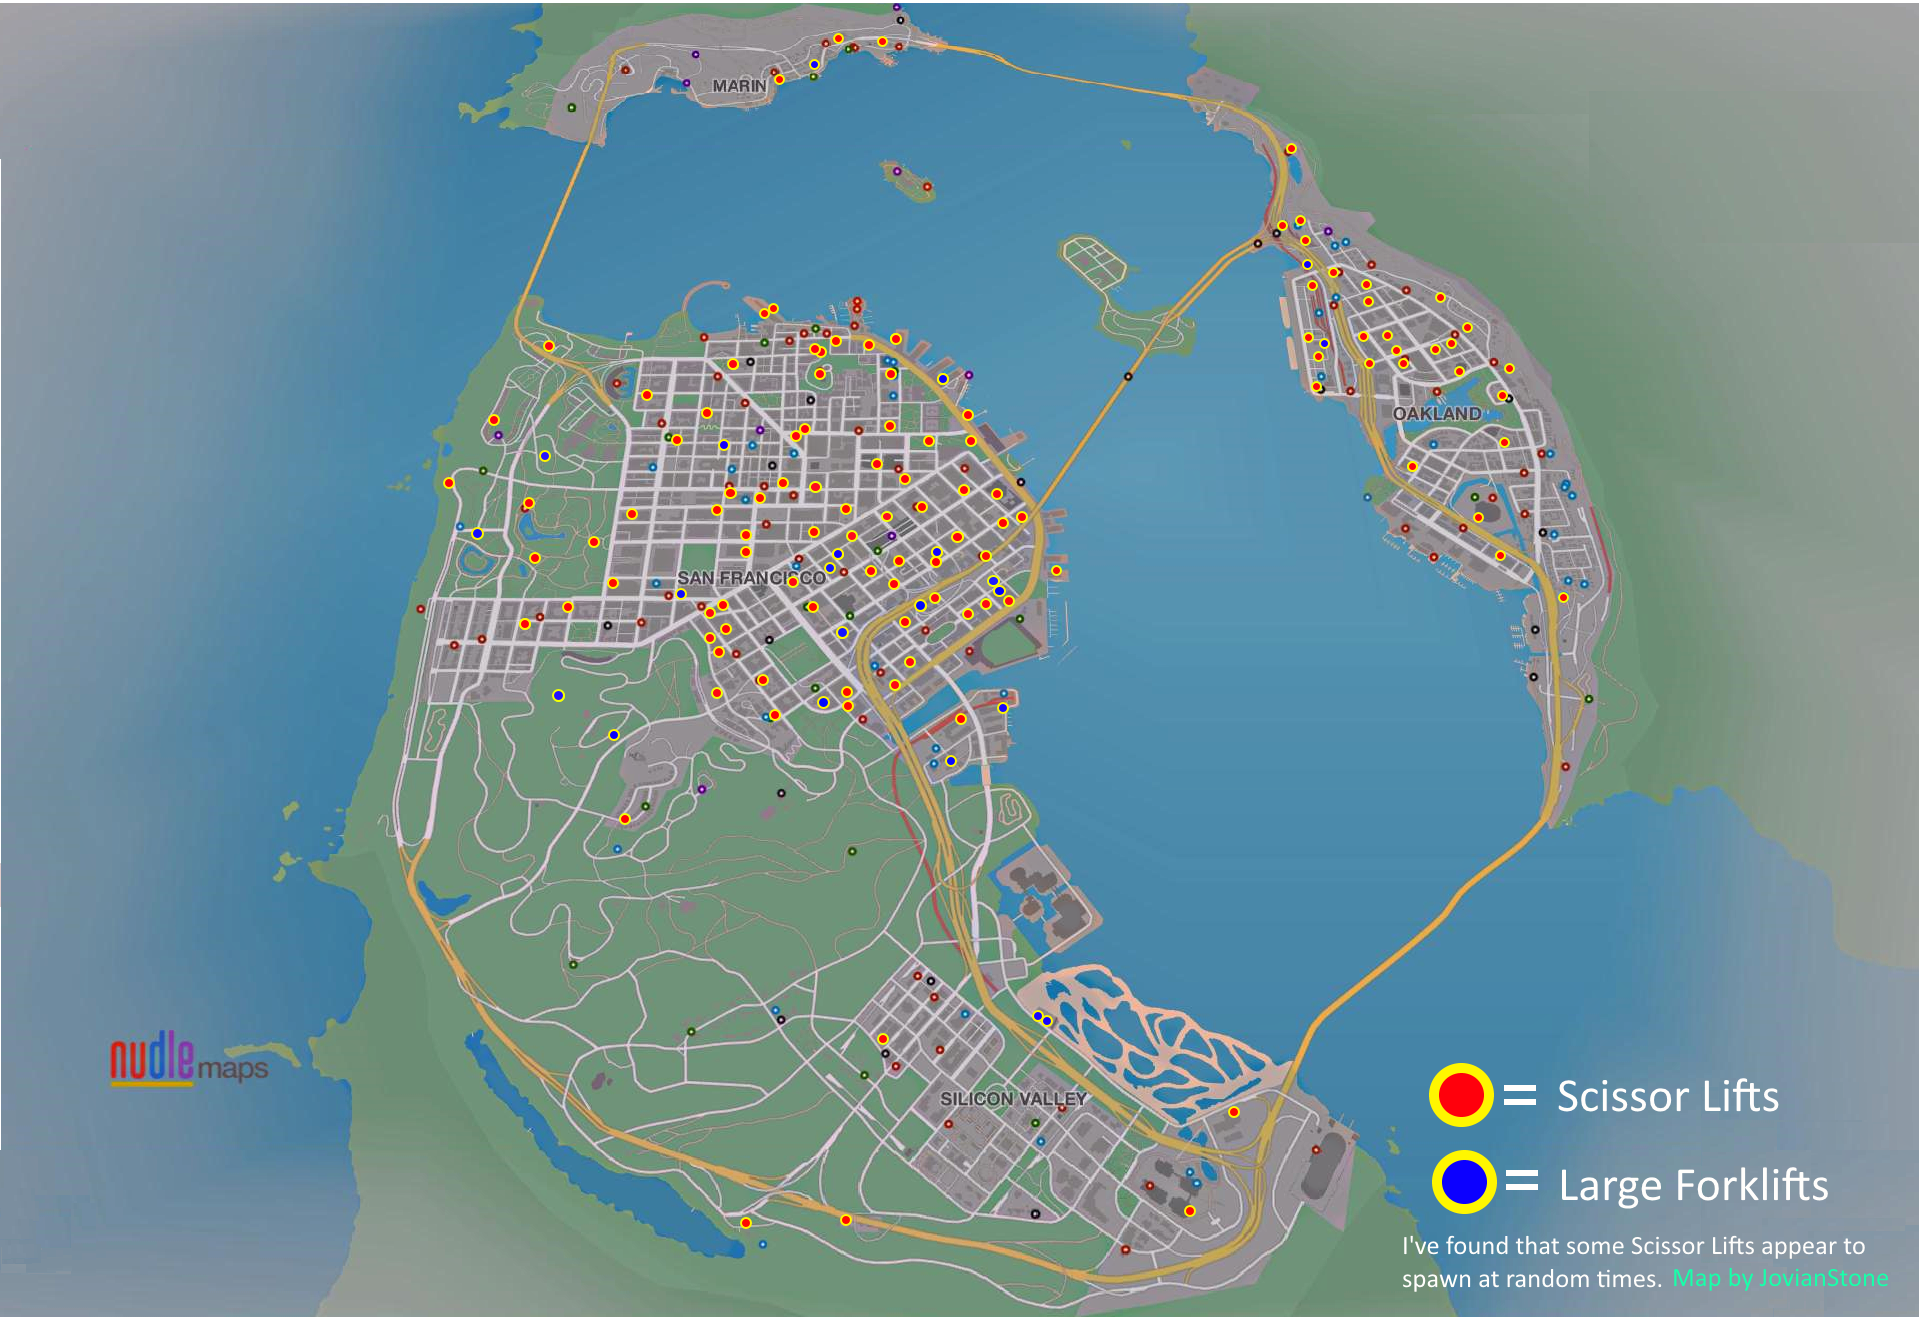 map my run with File Watch Dogs 2 Scissor Lift Map on Farming Simulator 19 Top 10 Feature Requests Video further Pycharm 4 5 Eap Build 141 988 Introducing Python Profiler furthermore Island Hopping In The Maldives as well The Pixar Timeline Theory moreover Build Cinder Block Kitchen.